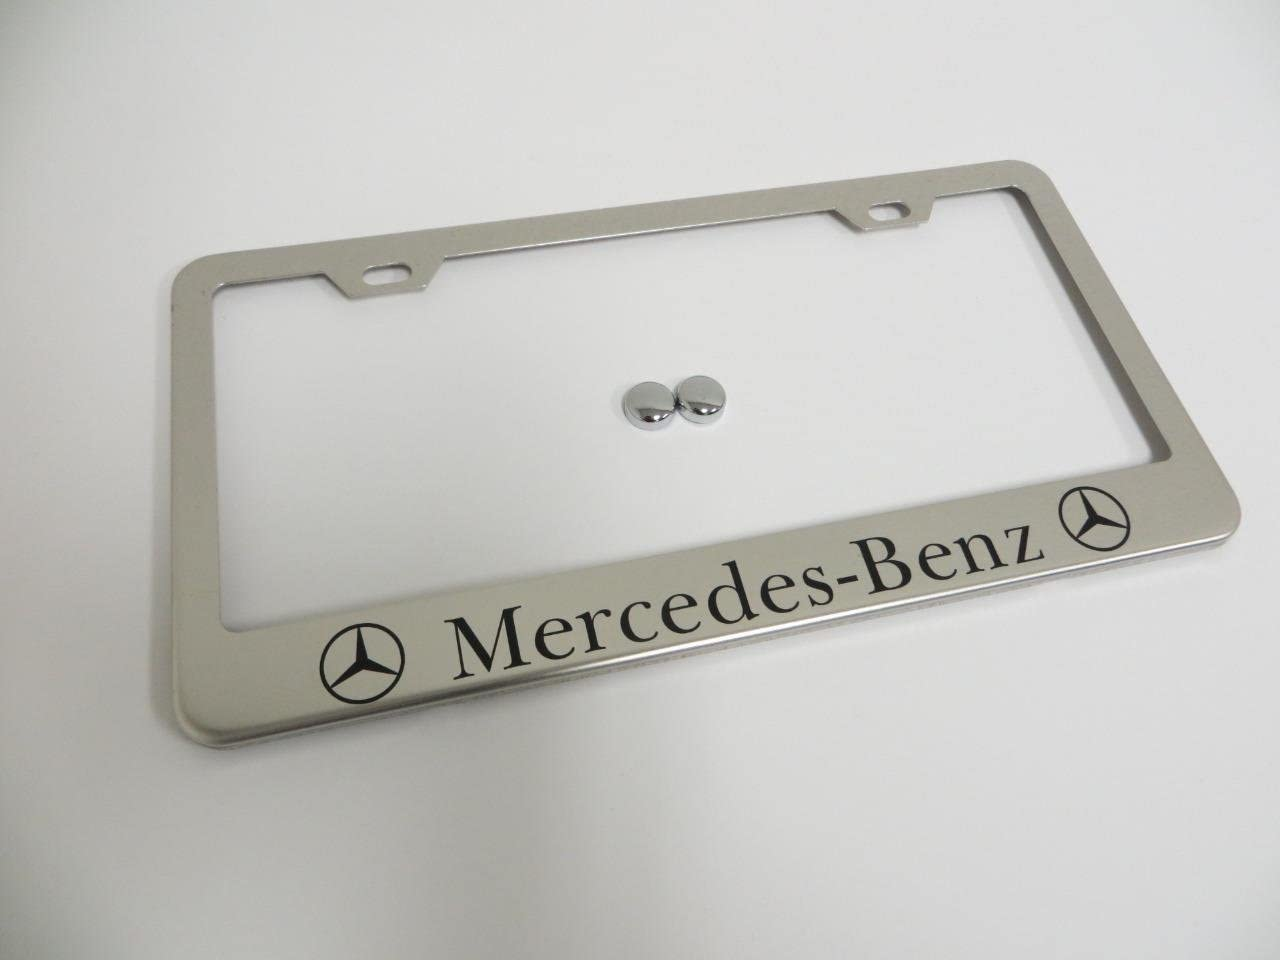 STAINLESS STEEL CHROME Polished Metal License Plate Frame 2 MERCEDES-BENZ